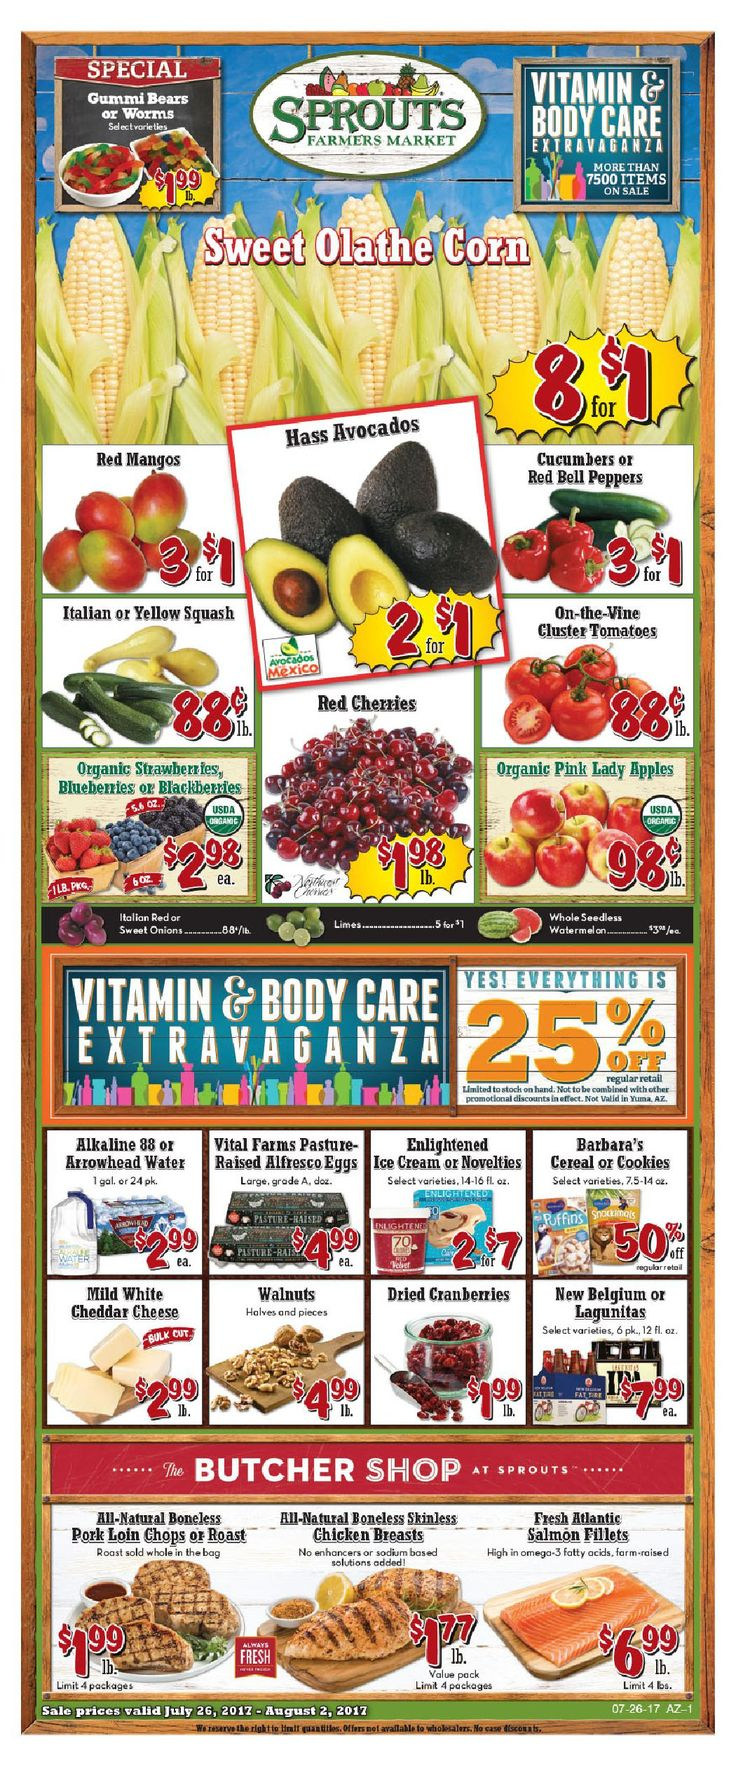 Sprouts Ad July 26 - August 2, 2017 - http://www.olcatalog.com/grocery/sprouts-weekly-ad.html